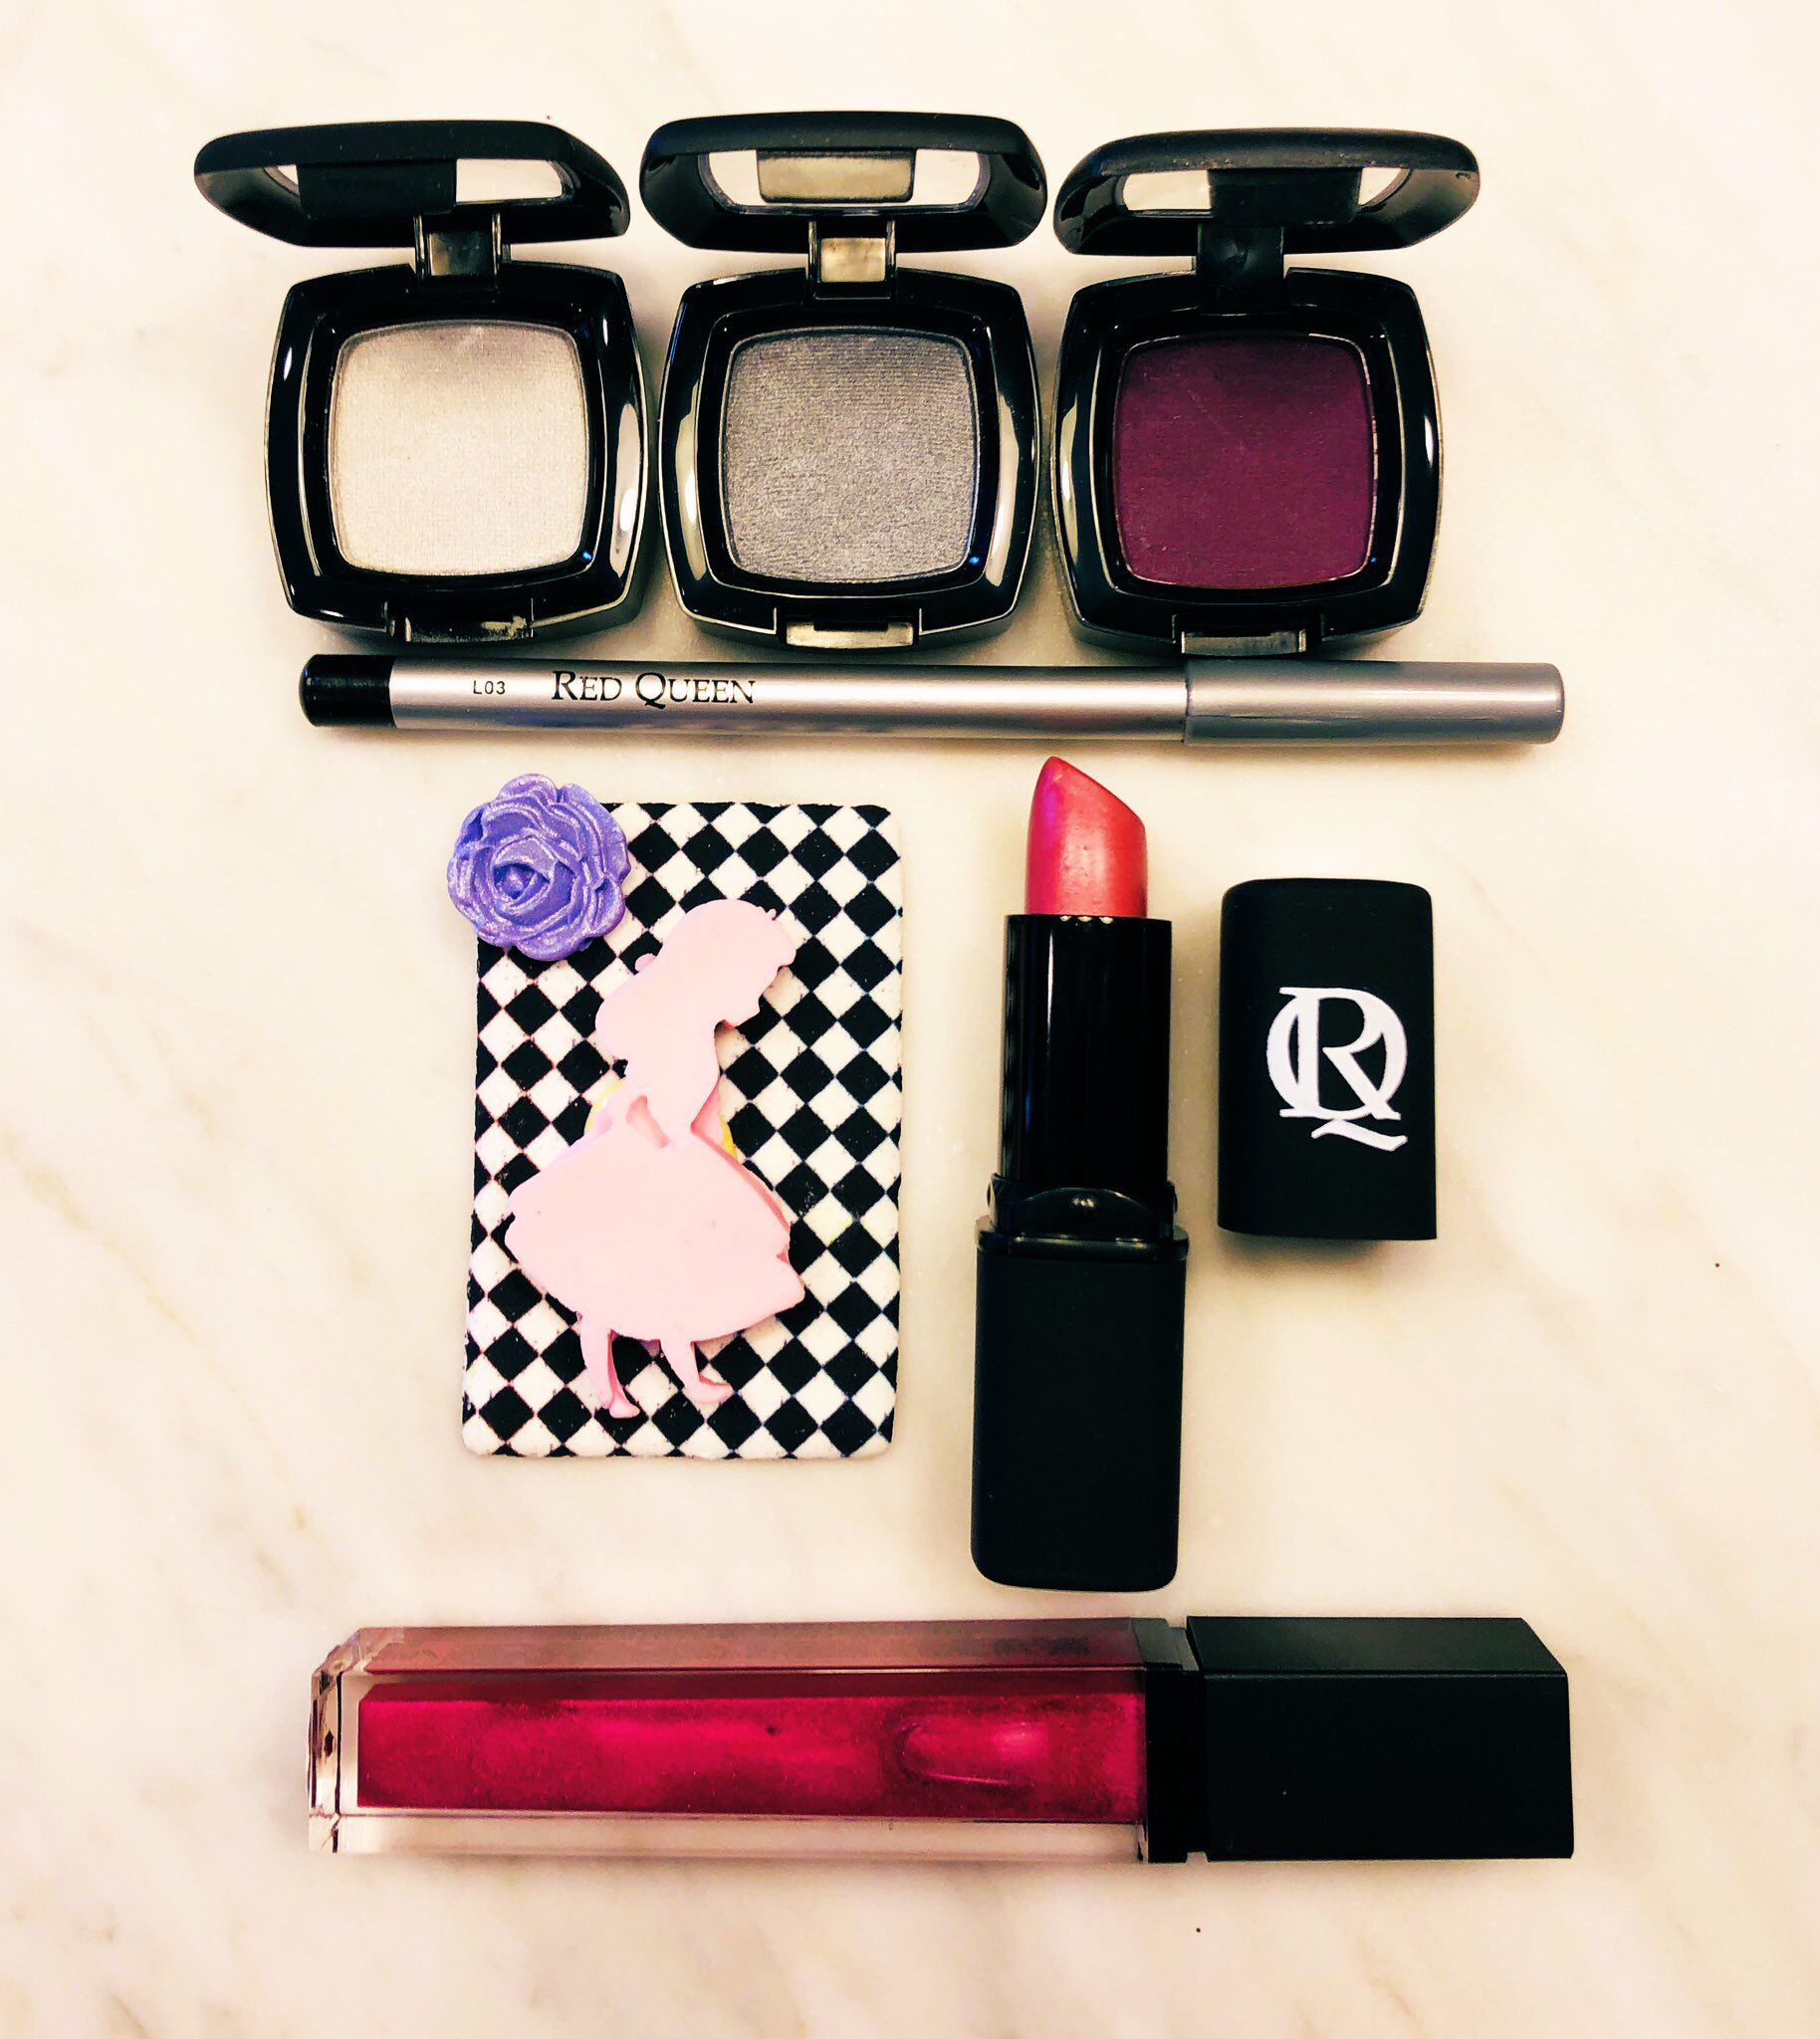 Red Queen Cosmetics Lavender aromatherapy, Makeup